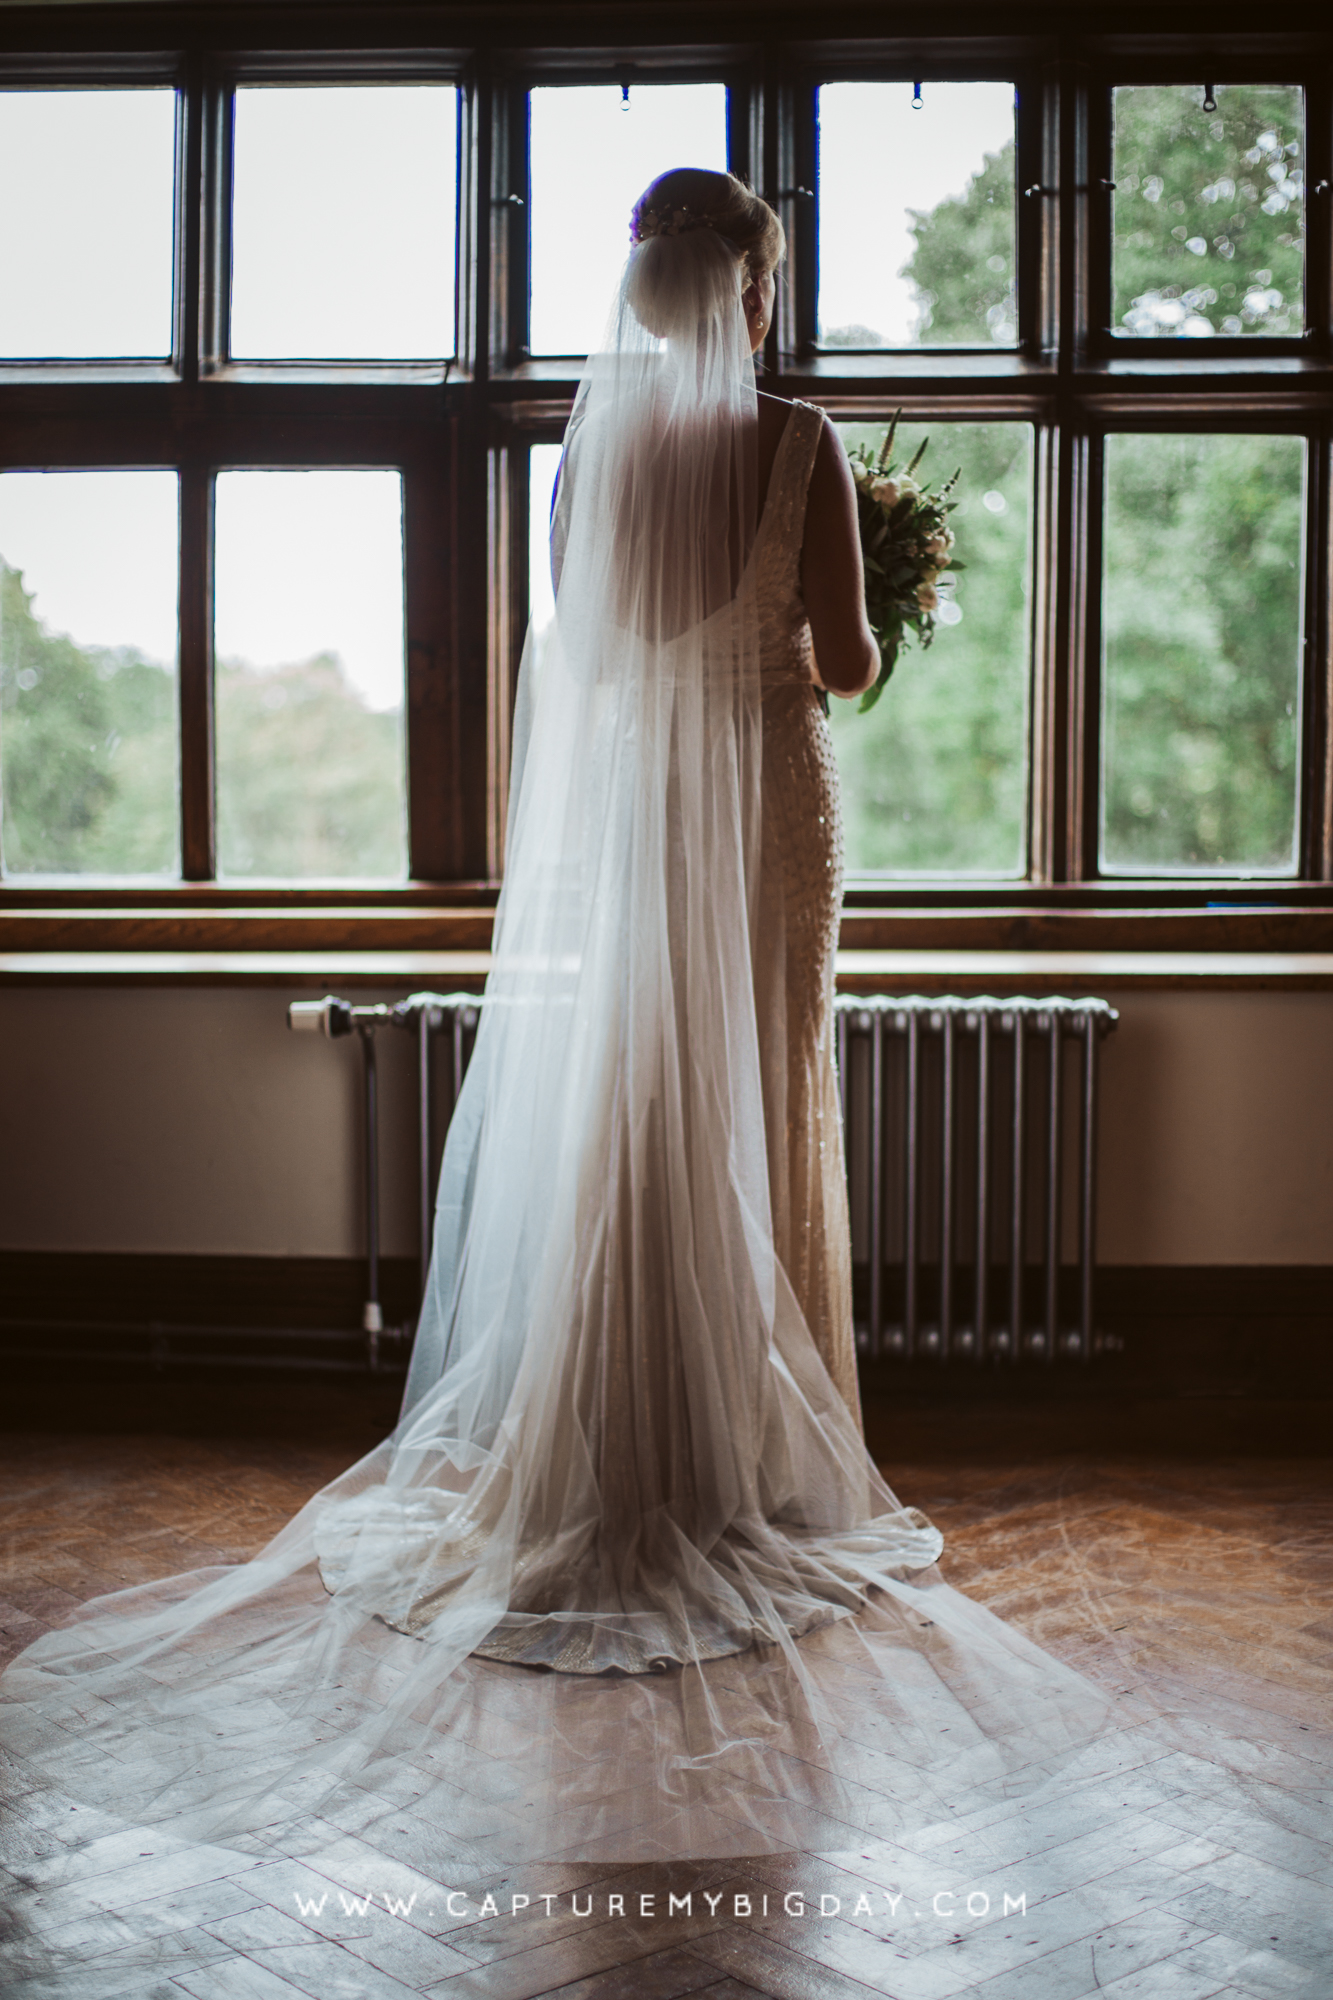 Bride in dress in front of window